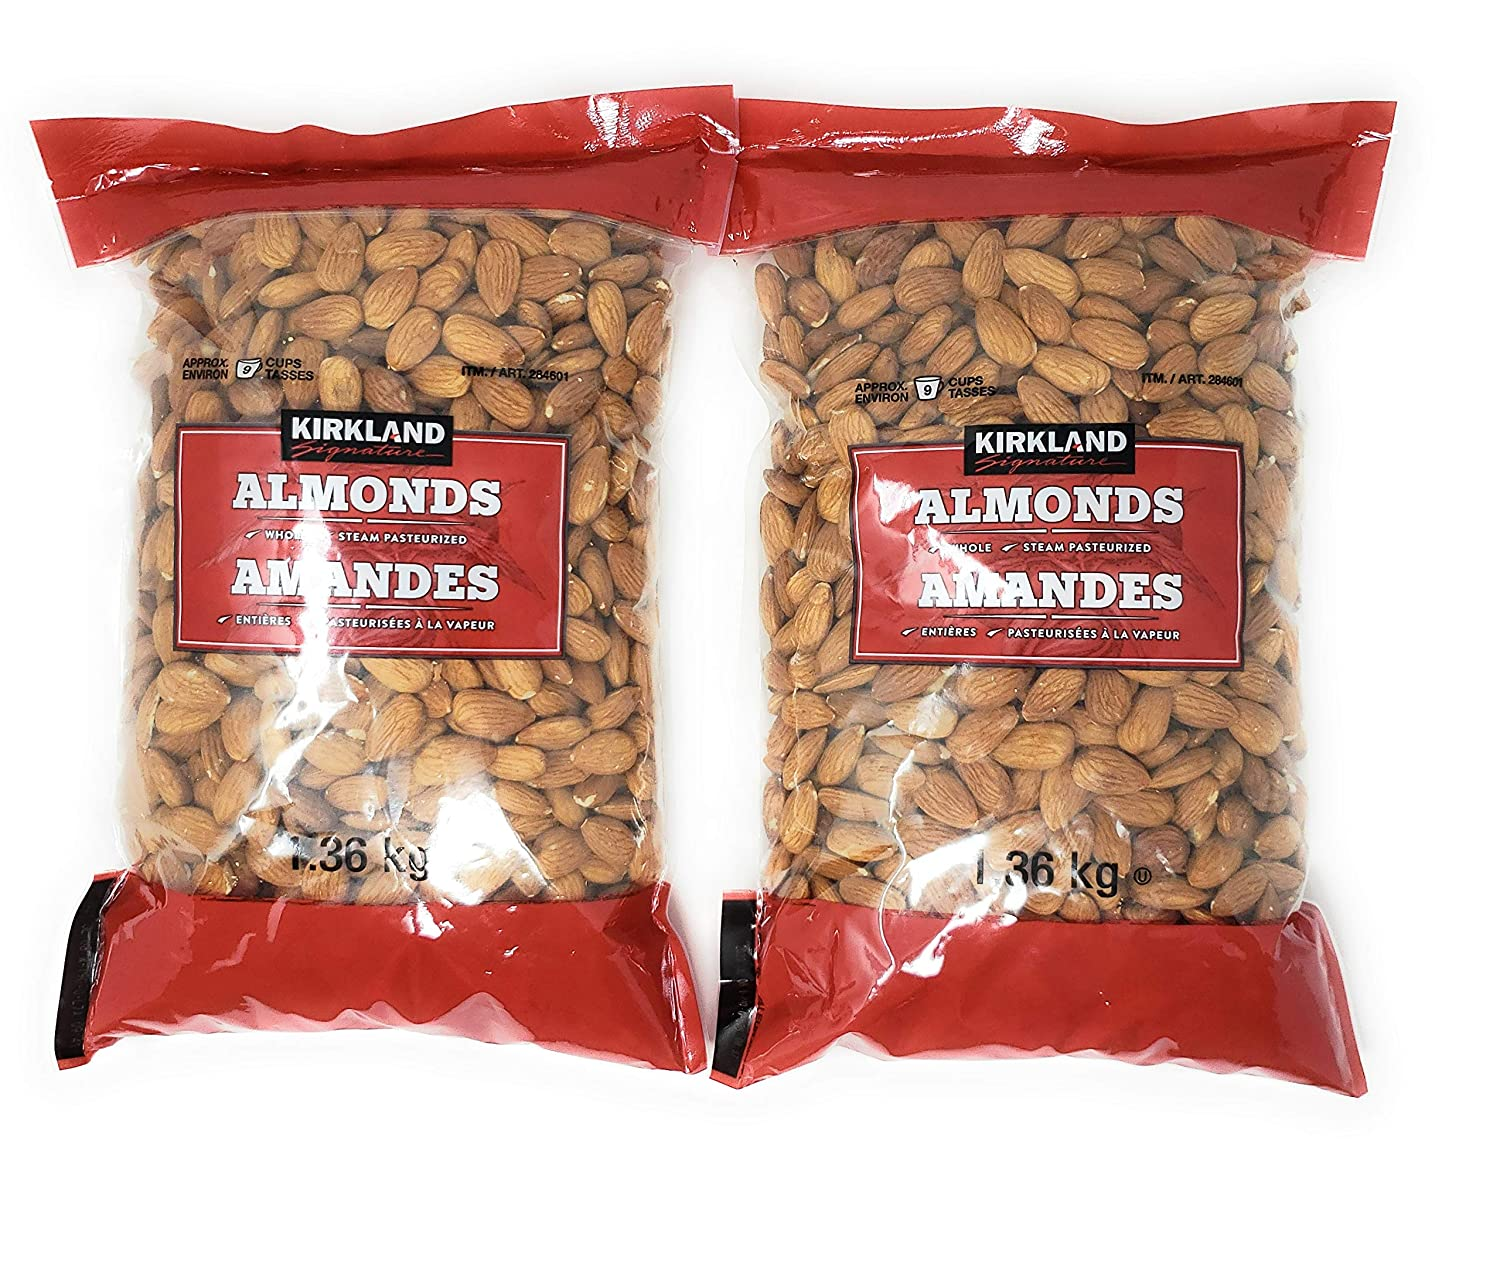 Kirkland Free Shipping Cheap Bargain Gift Max 75% OFF Signature Supreme Whole Almonds 3 Pounds Pack 2